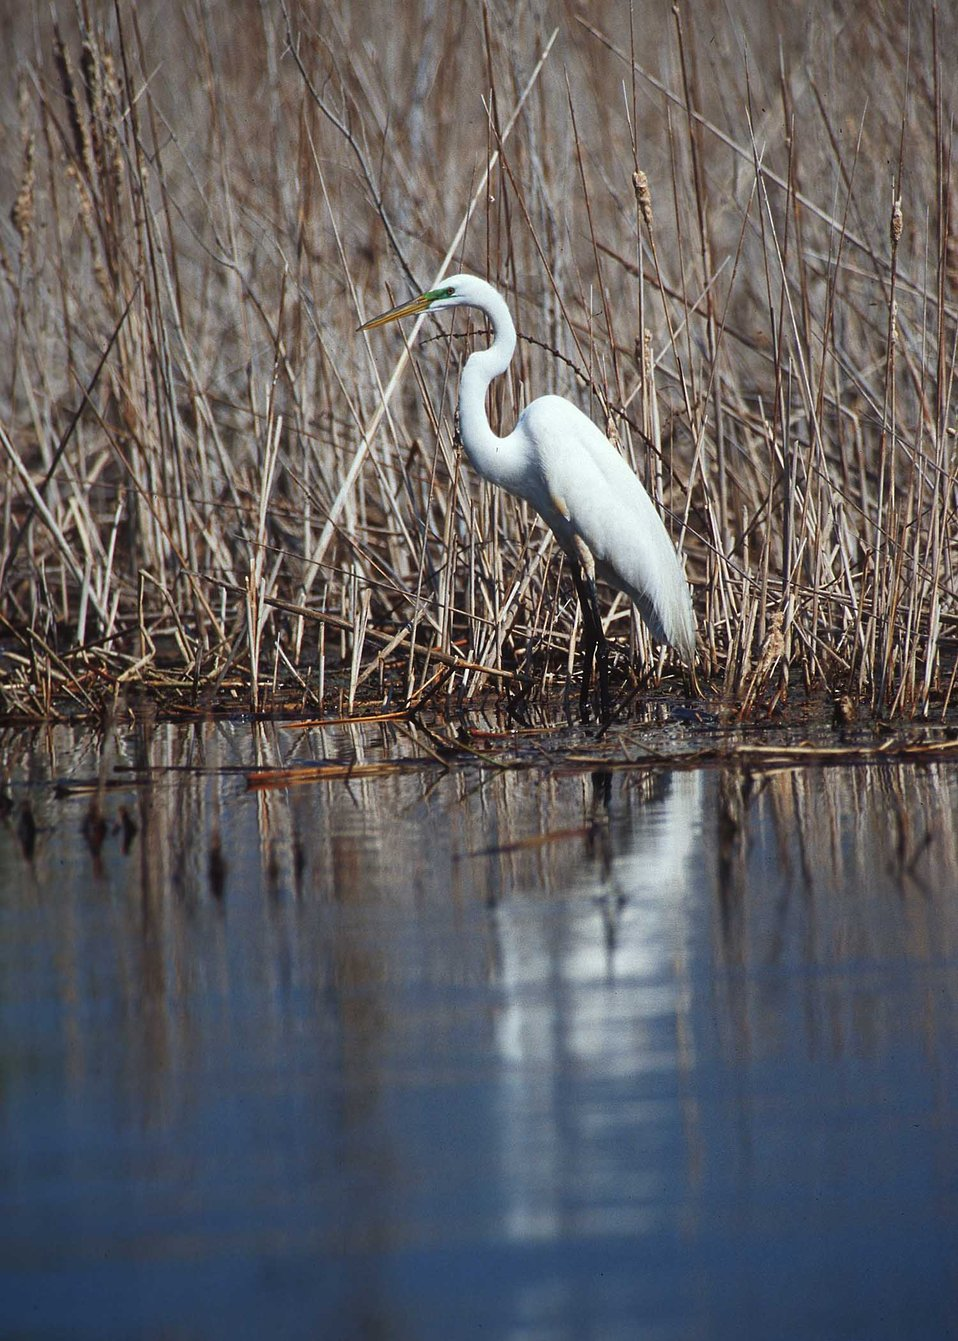 Great egret in the prairie pothole region of South Dakota.